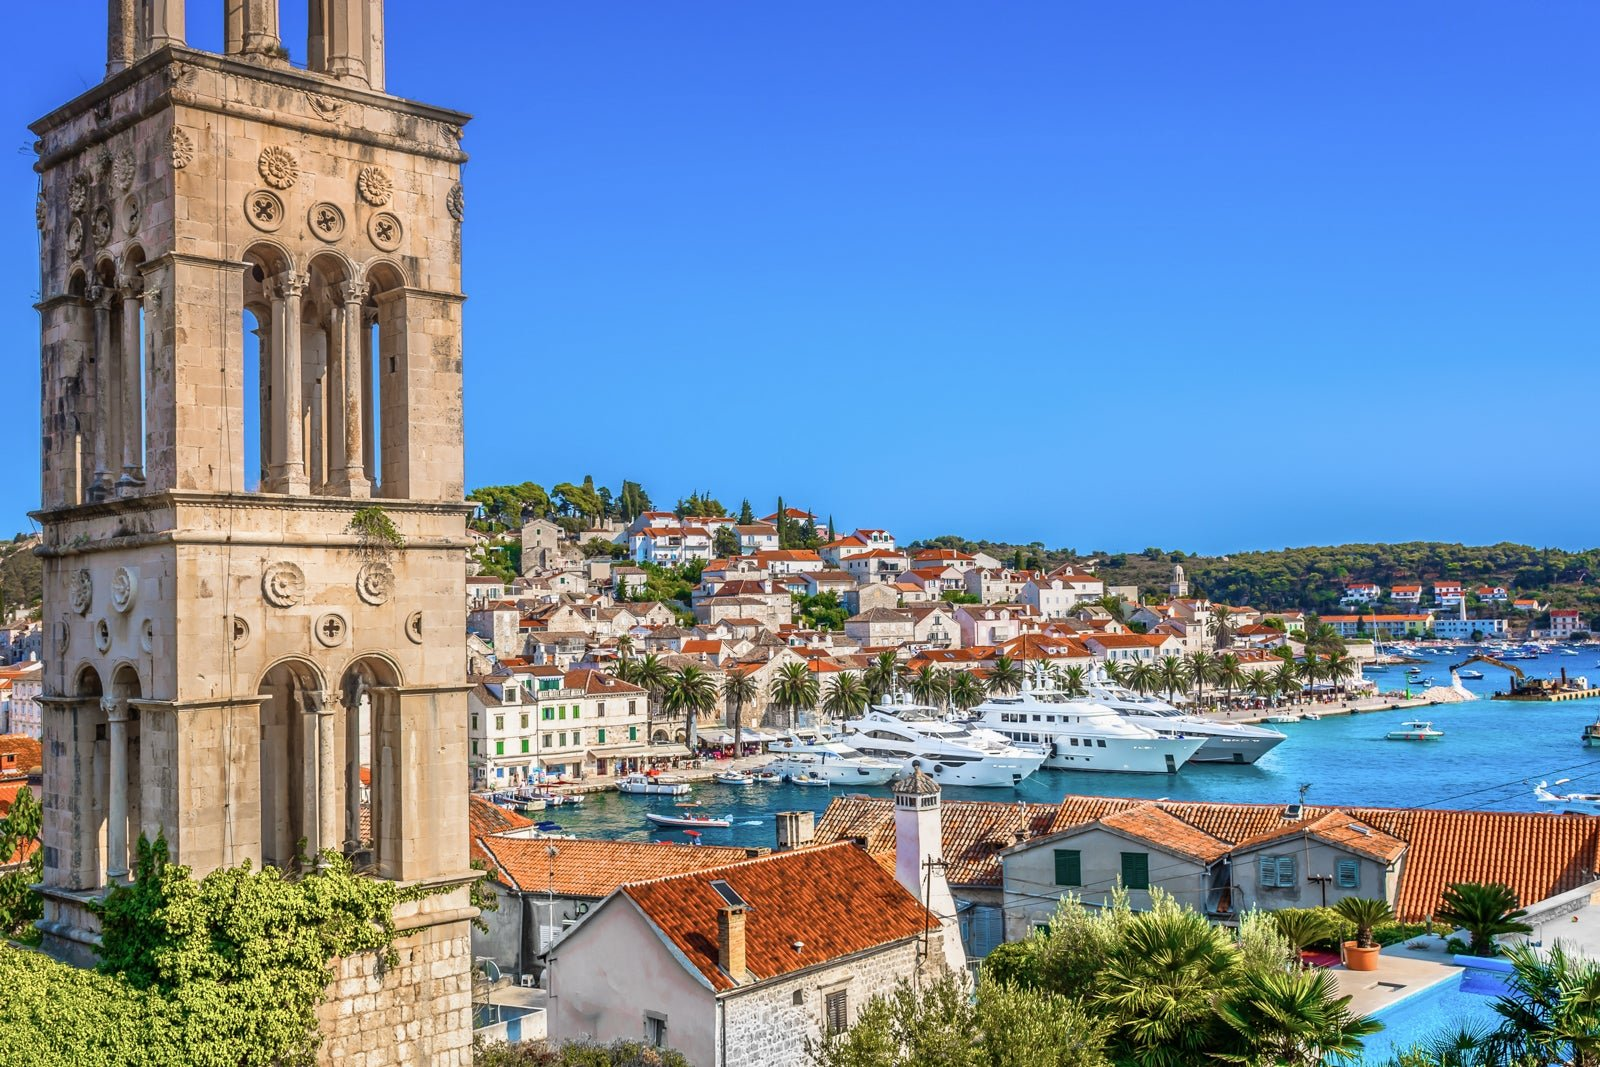 7 of the top European countries to visit this summer